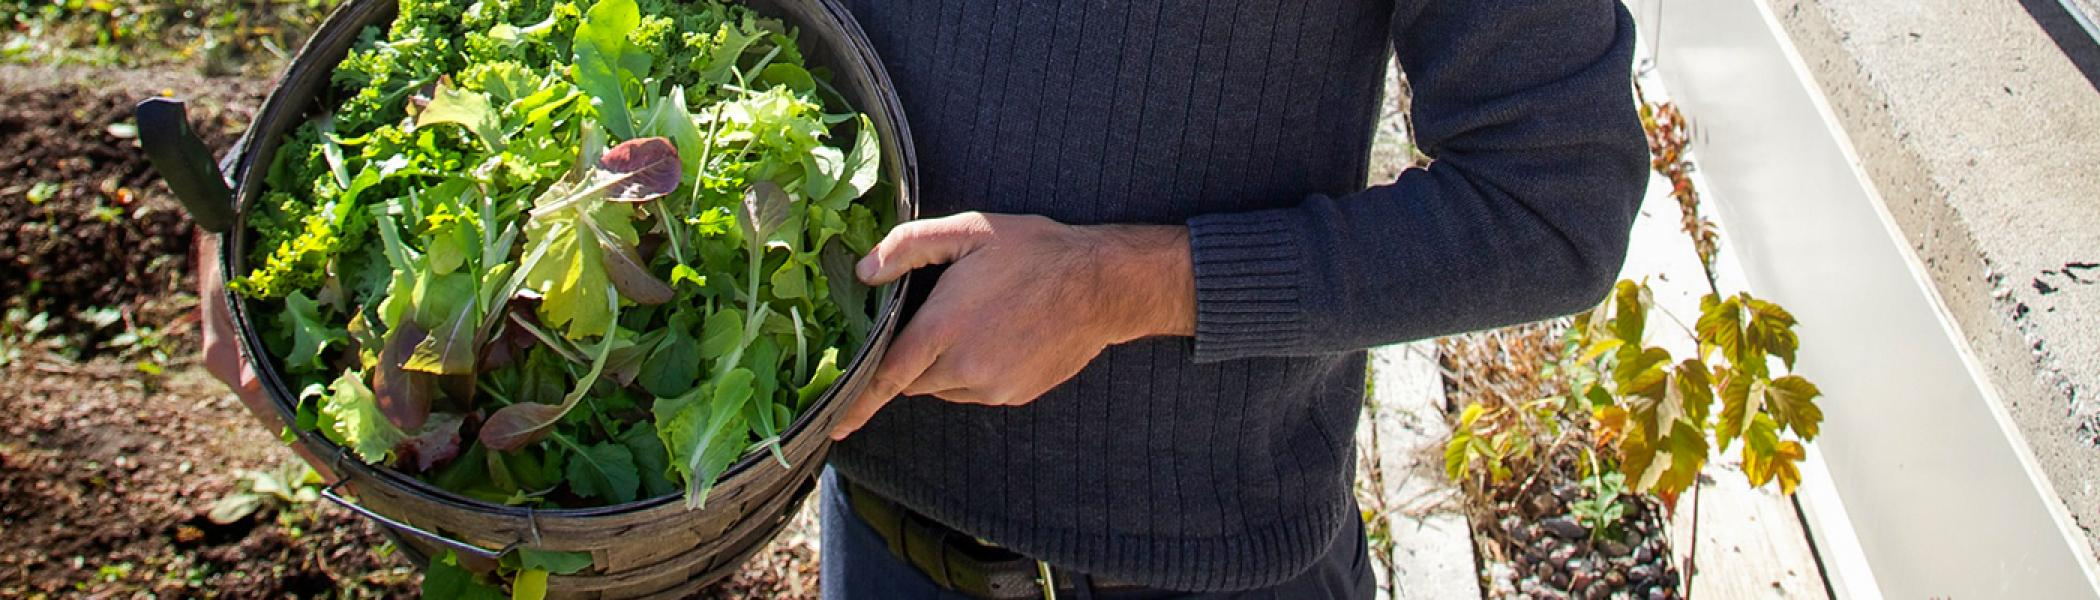 Male hands holding a wicker basket of freshly picked greens on the rooftop garden in the summer sun